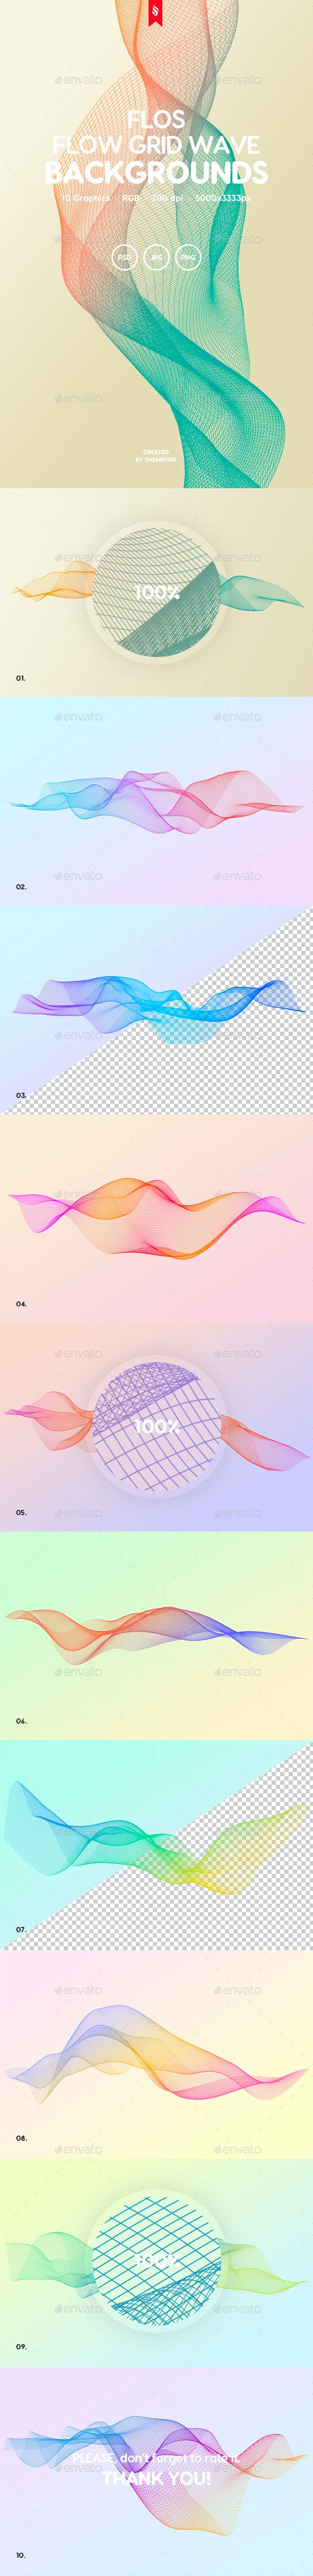 Flos - Flowing Grid Wave Background Set - Abstract Backgrounds